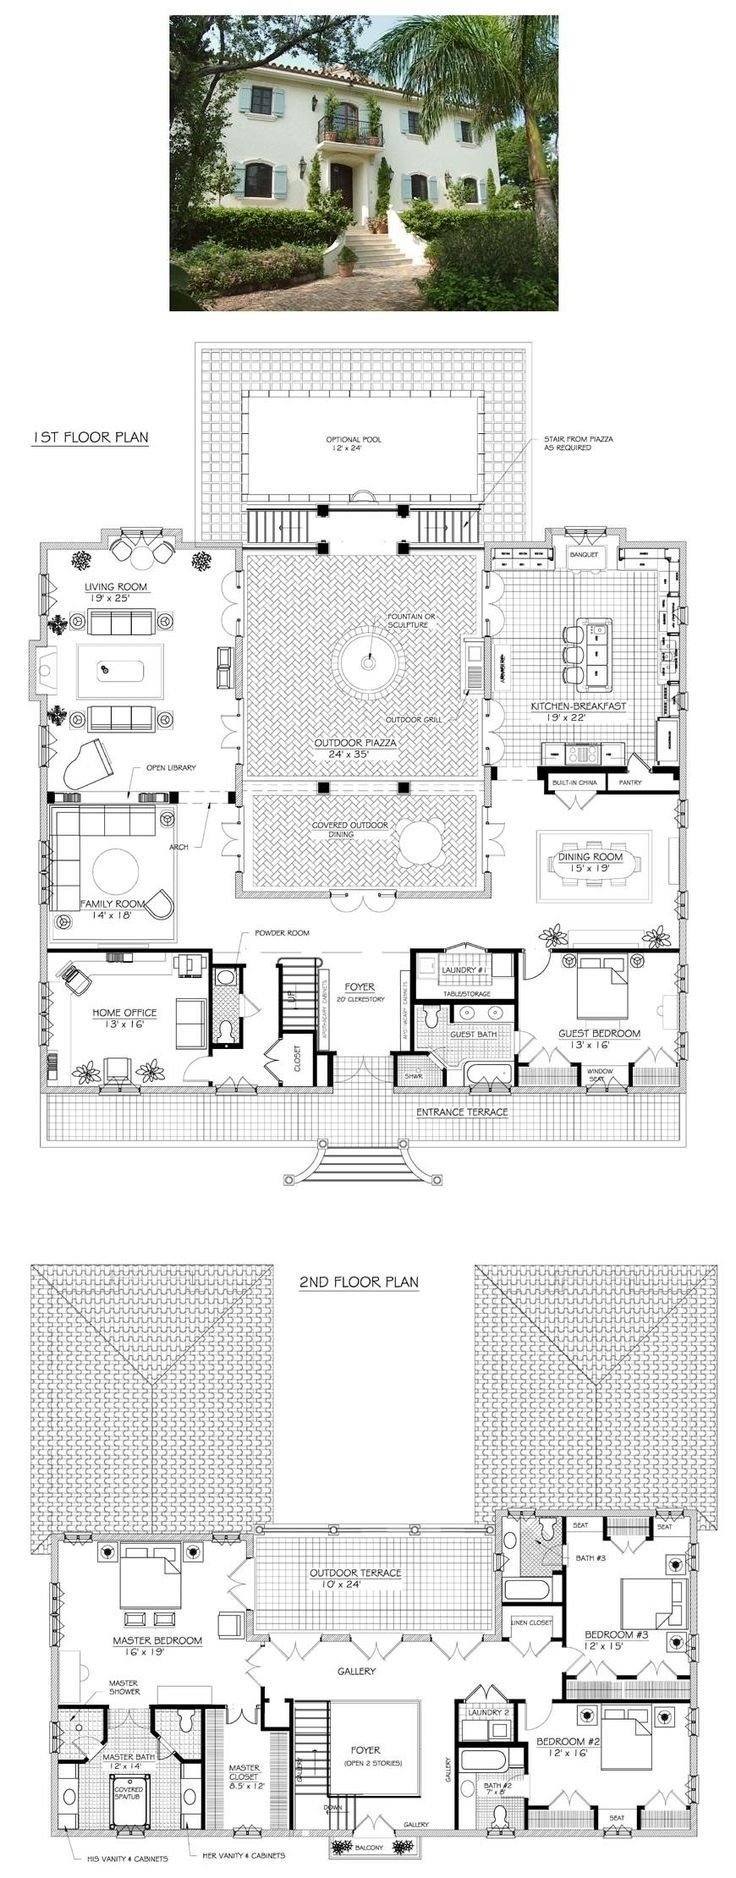 Gorgeous French villa plan - I fell in love with this plan. It's my new dream house. I have a board that shows what I would do with it. The plan with my changes is pinned there as well. https://www.pinterest.com/imtoomisty/la-vie-de-la-villa/ Unfortunately the company has changed their website, and this plan is no longer available. 5616sf (including terrace and courtyard)